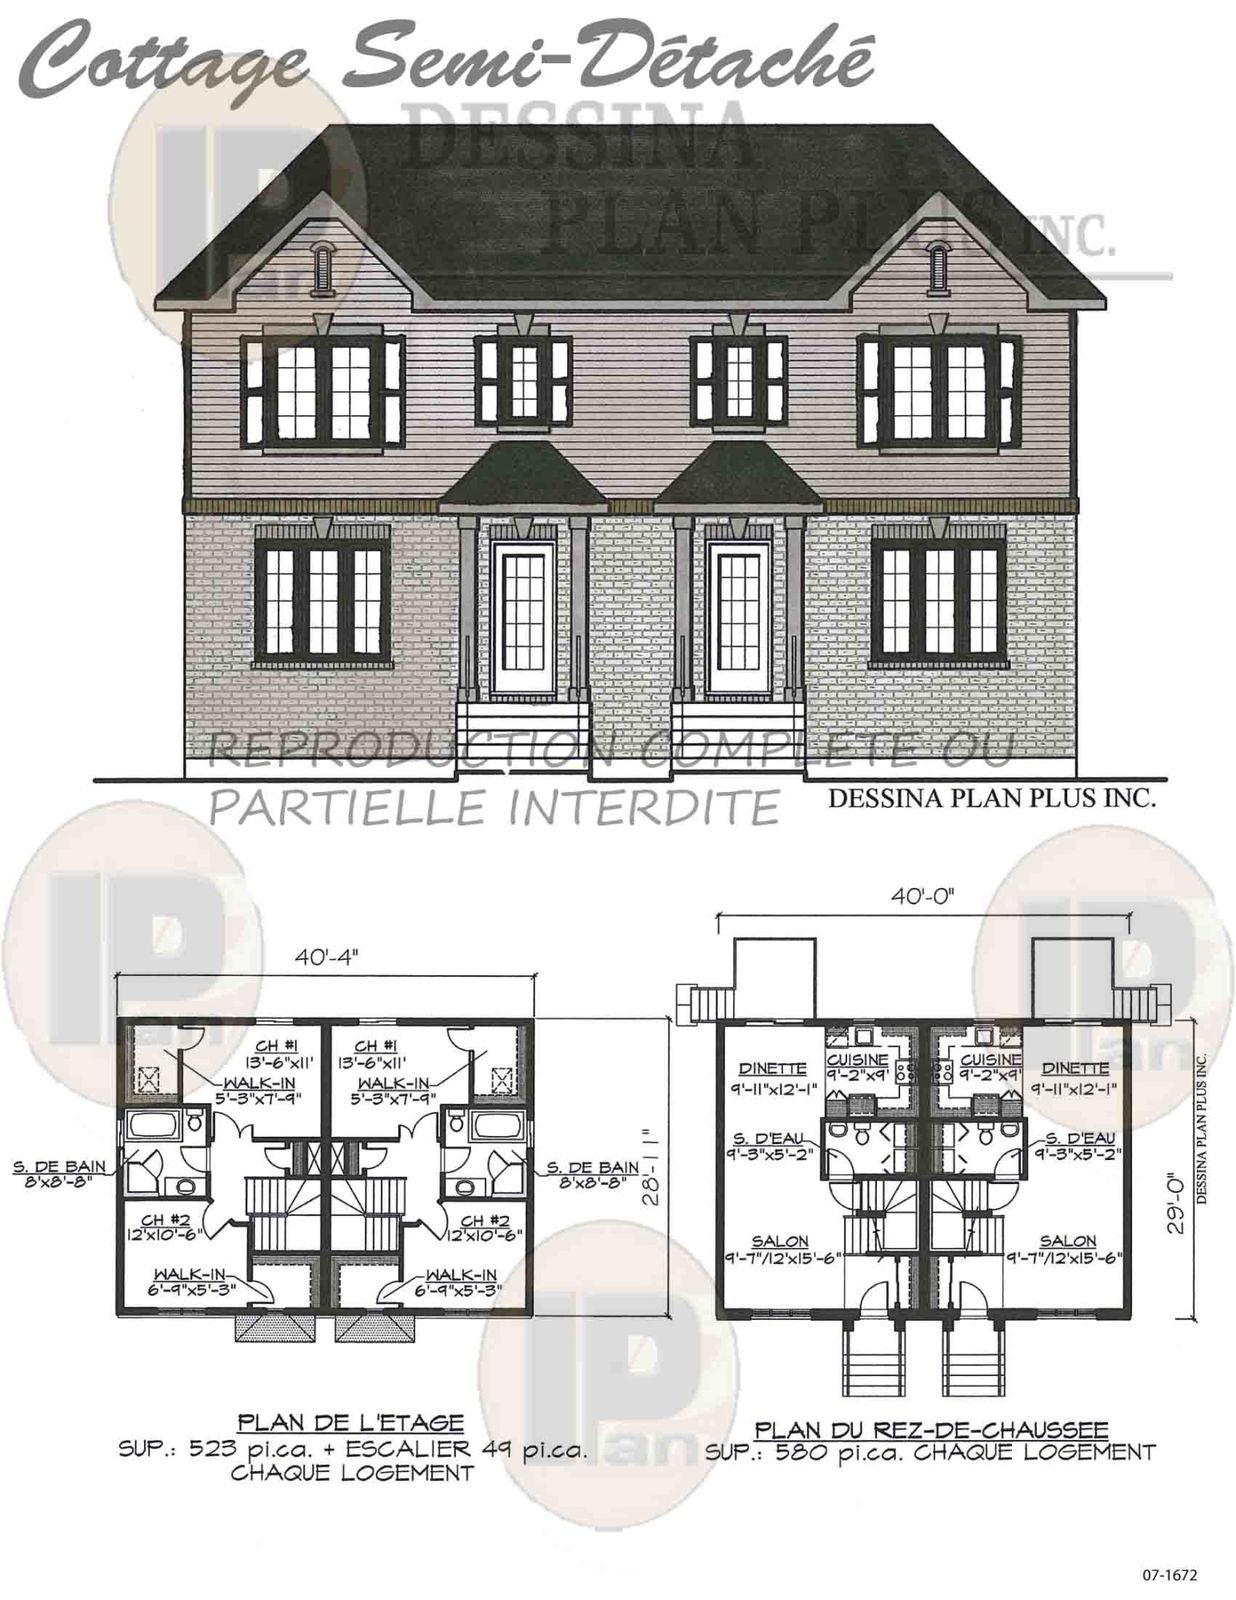 plans vendre multifamiliale dessina plan plus inc